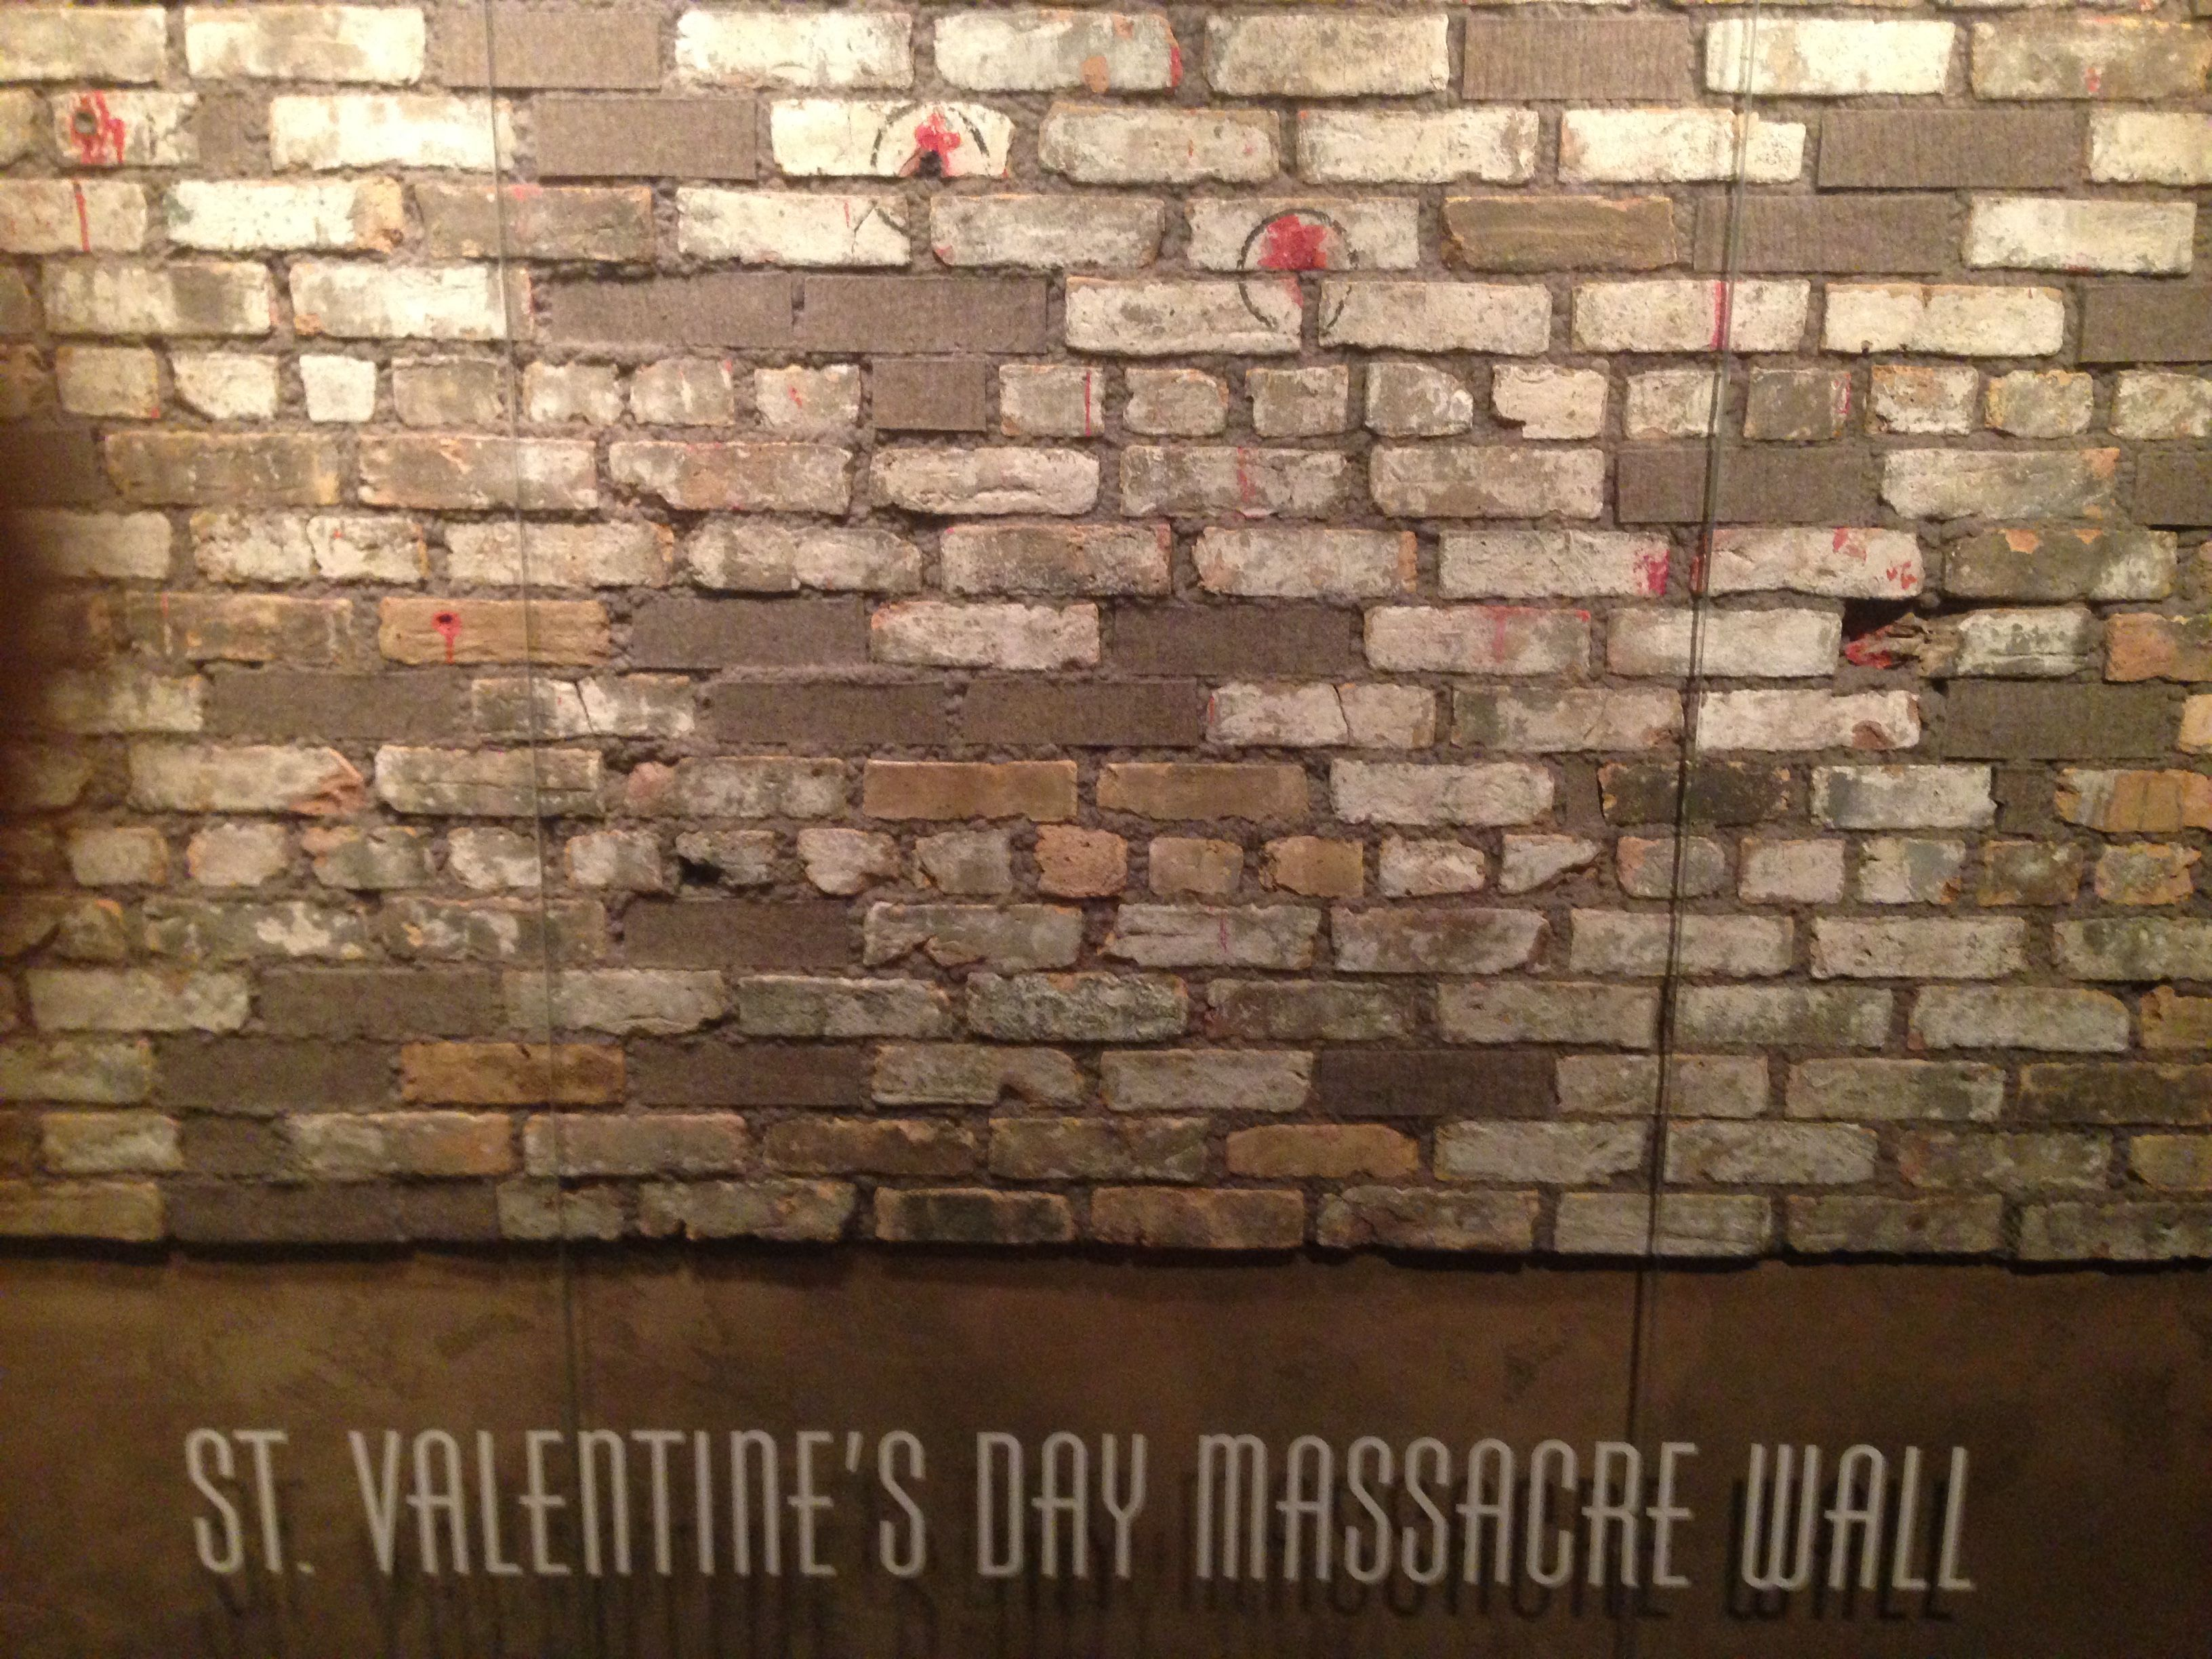 To Me This Was The Most Macabre Exhibit At The Las Vegas Mob Museum